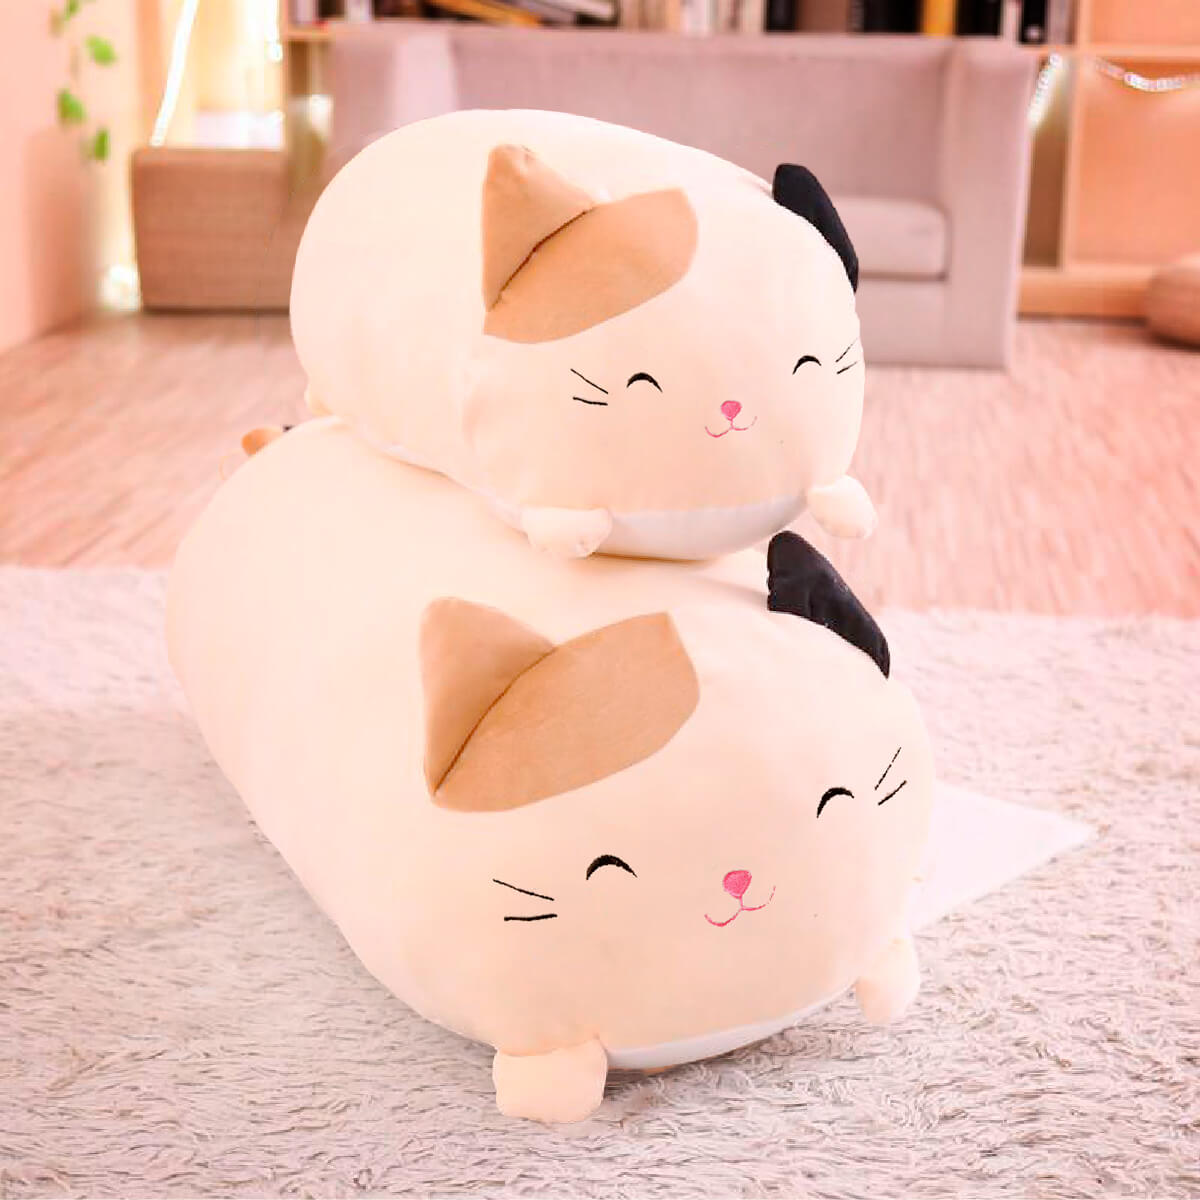 Cute Kawai Cat Pillows - two cat pillow size comparison with beige smiling variant